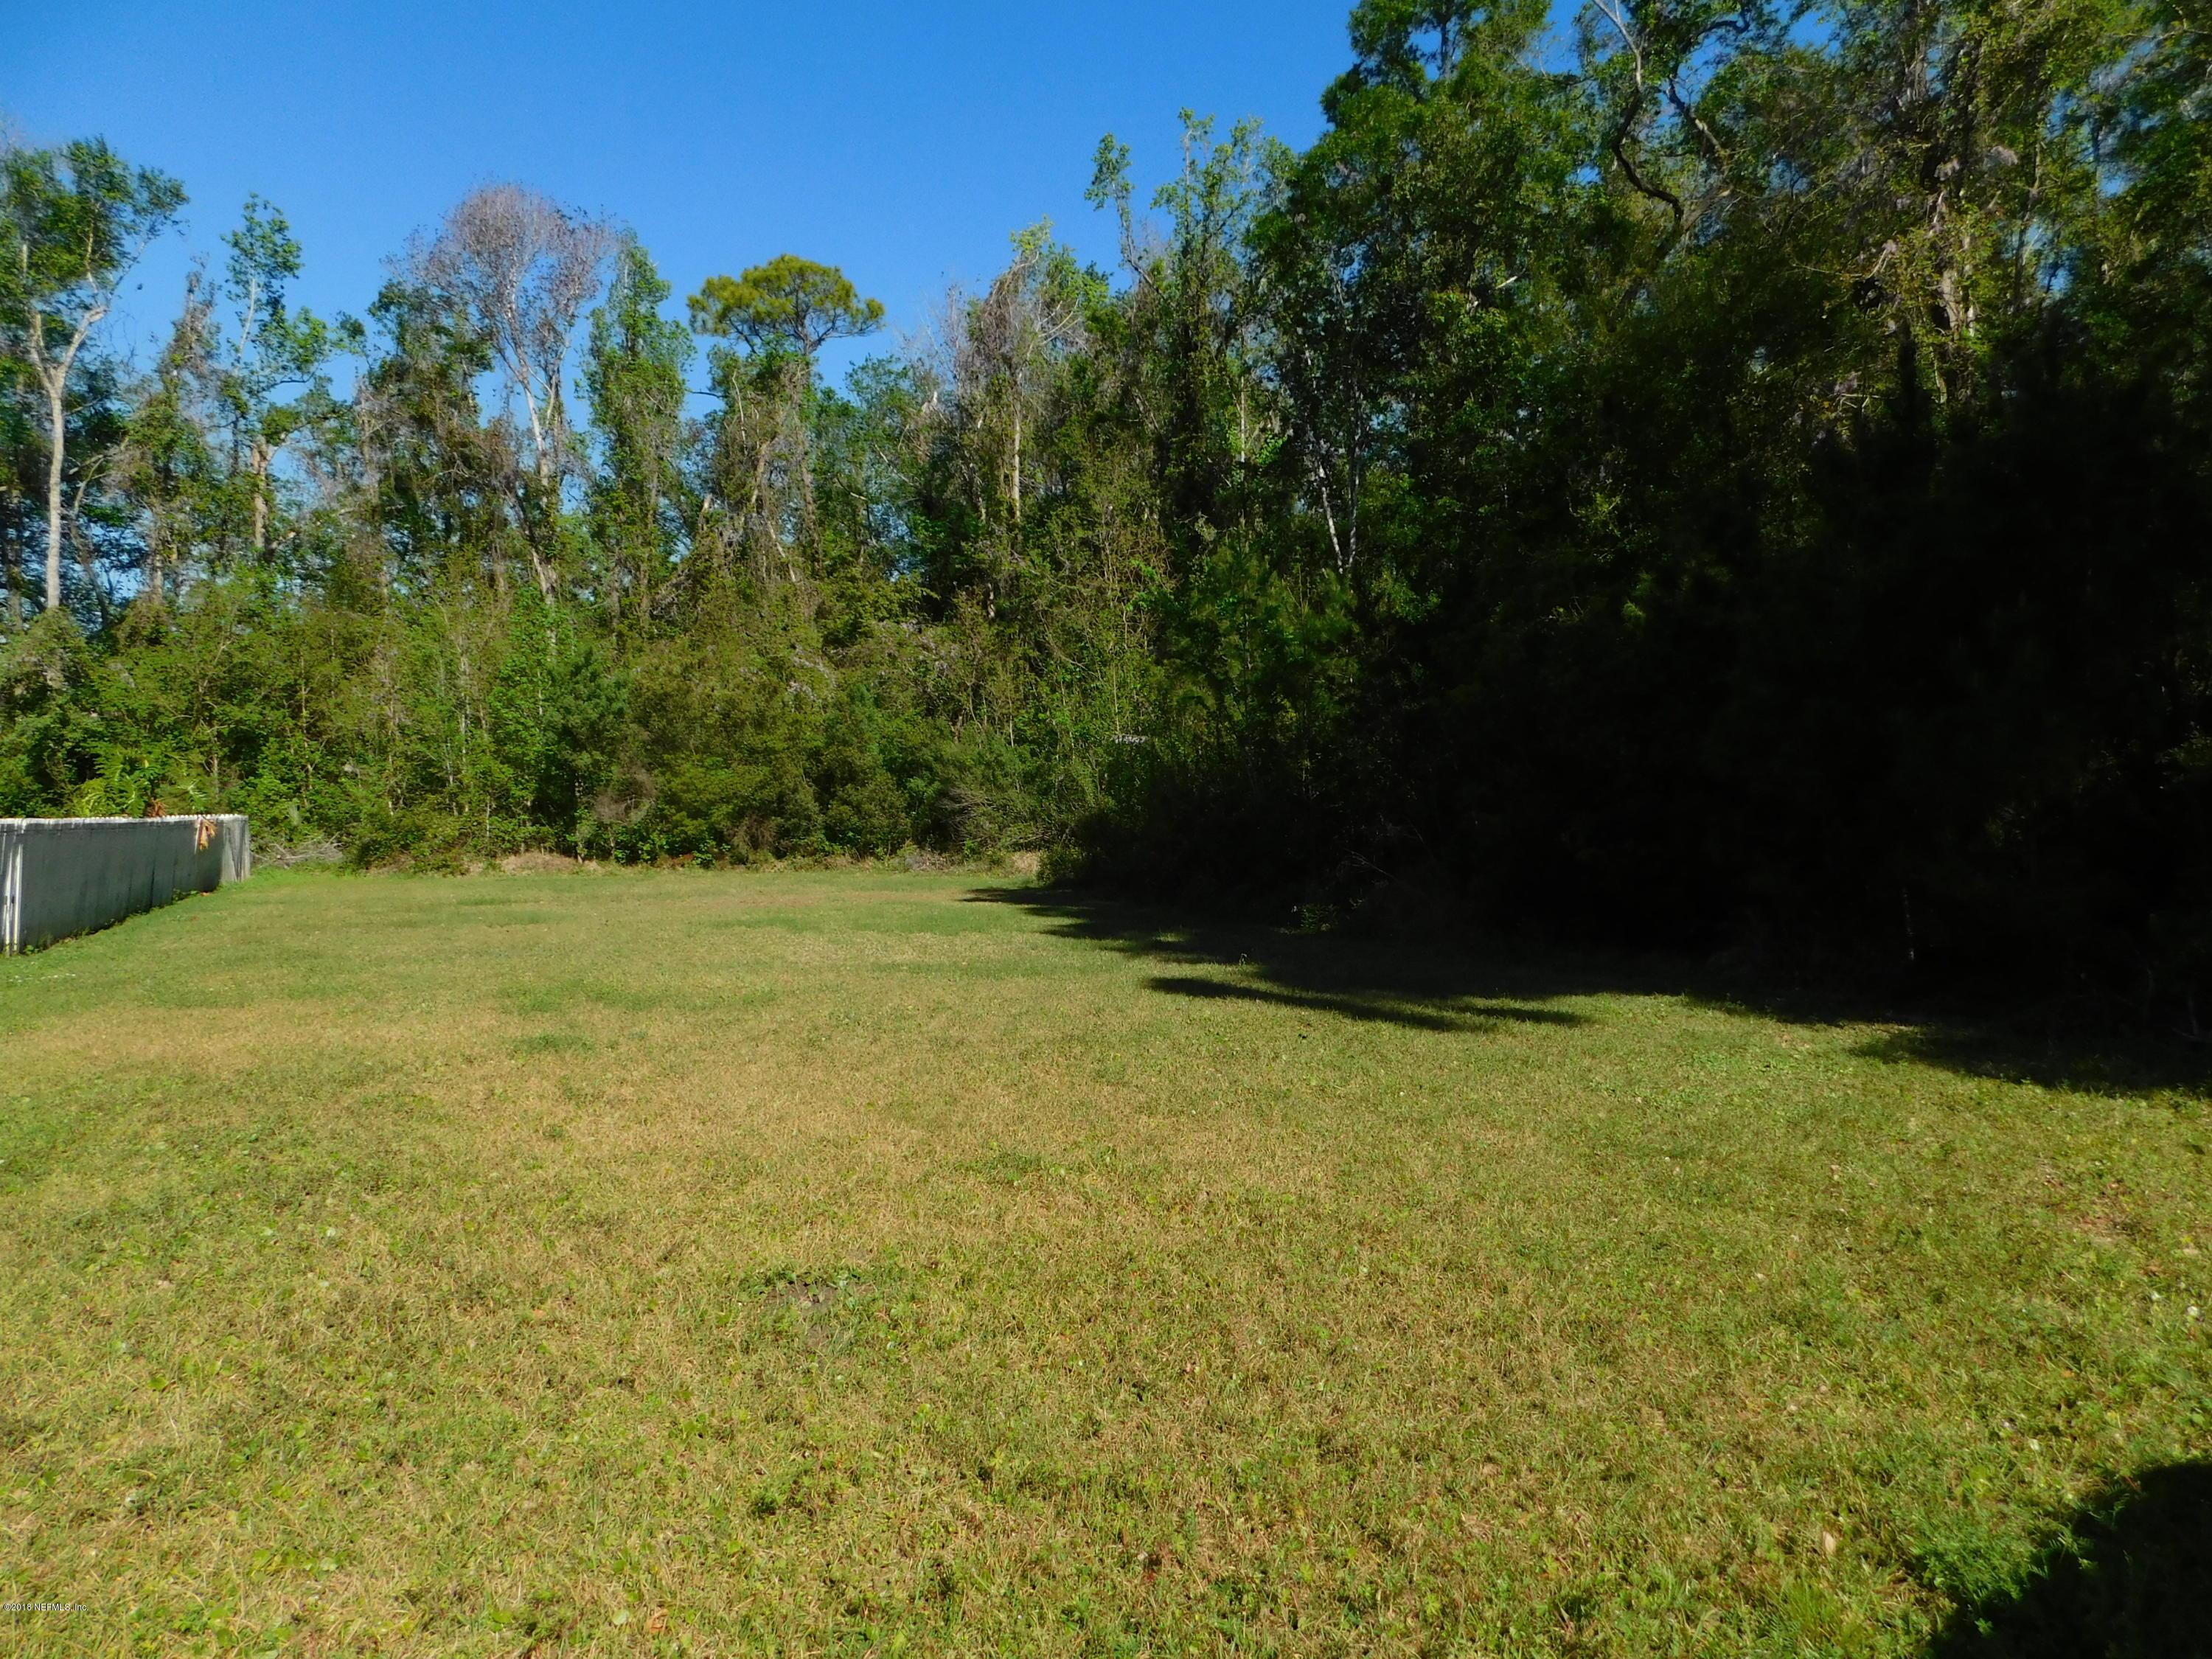 0 BRANDIES, CALLAHAN, FLORIDA 32011, ,Vacant land,For sale,BRANDIES,927130